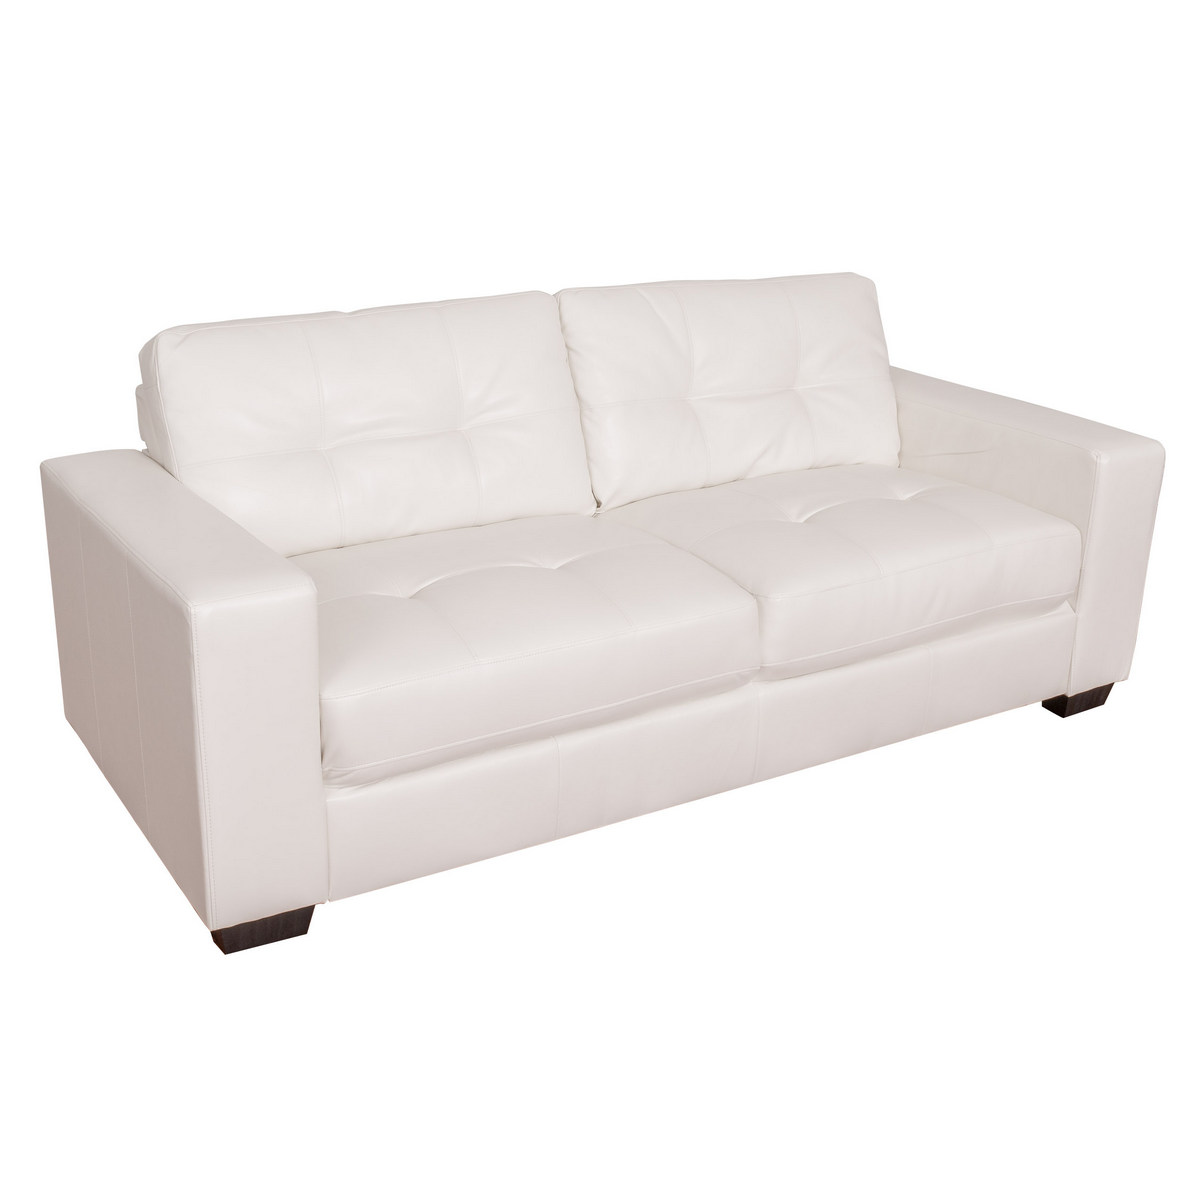 Corliving Tufted White Bonded Leather Sofa Product Picture